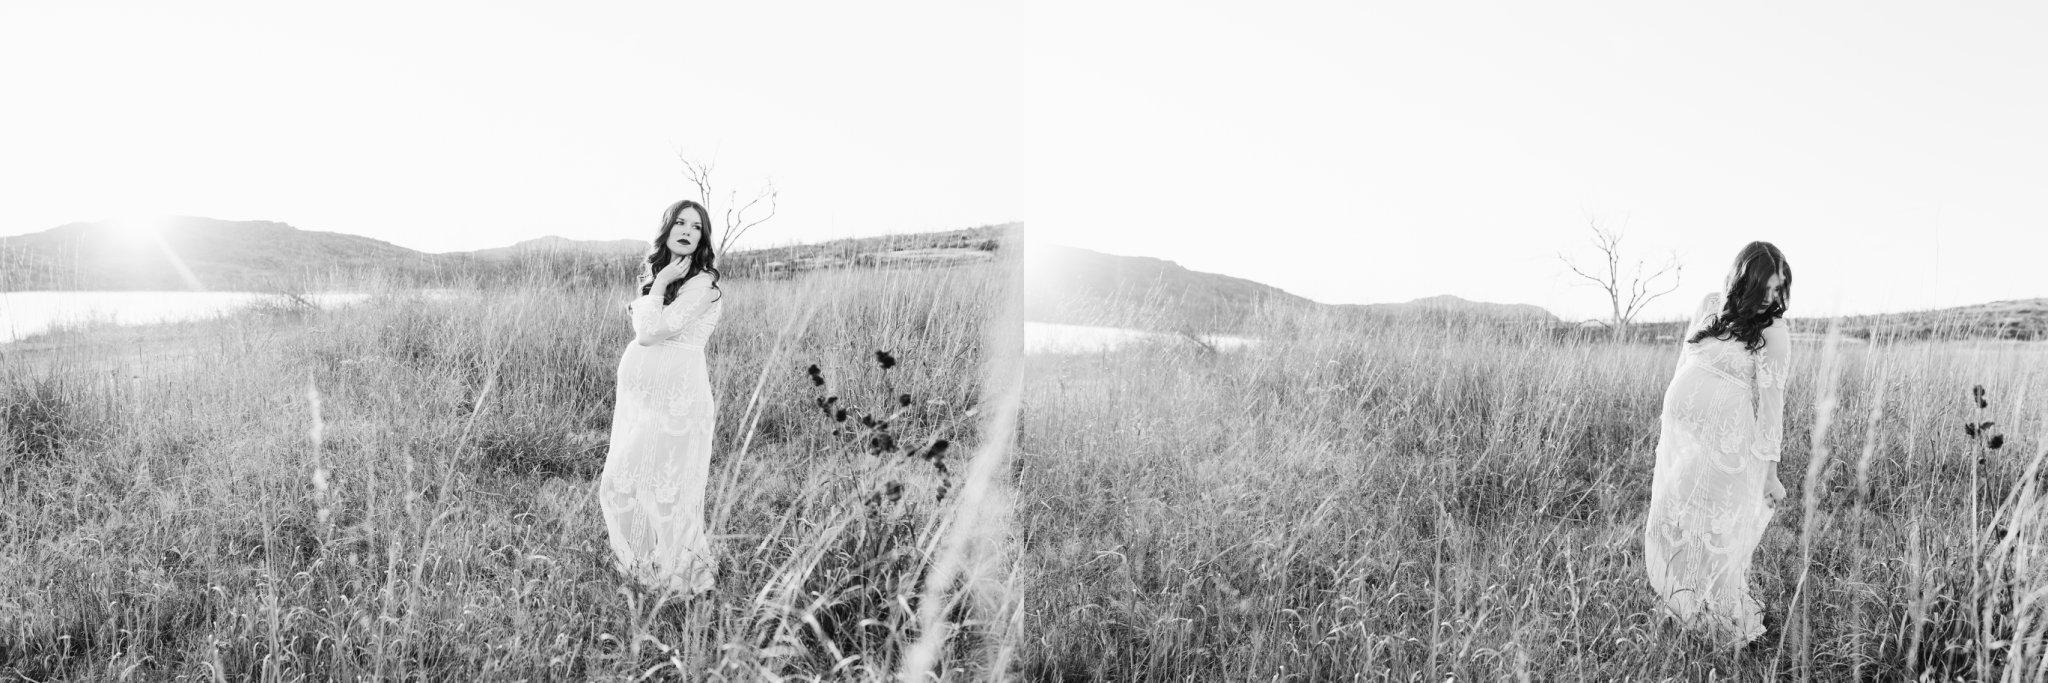 oklahoma-maternity-photographer-mount-scott-wichita-mountains-black-white.jpg